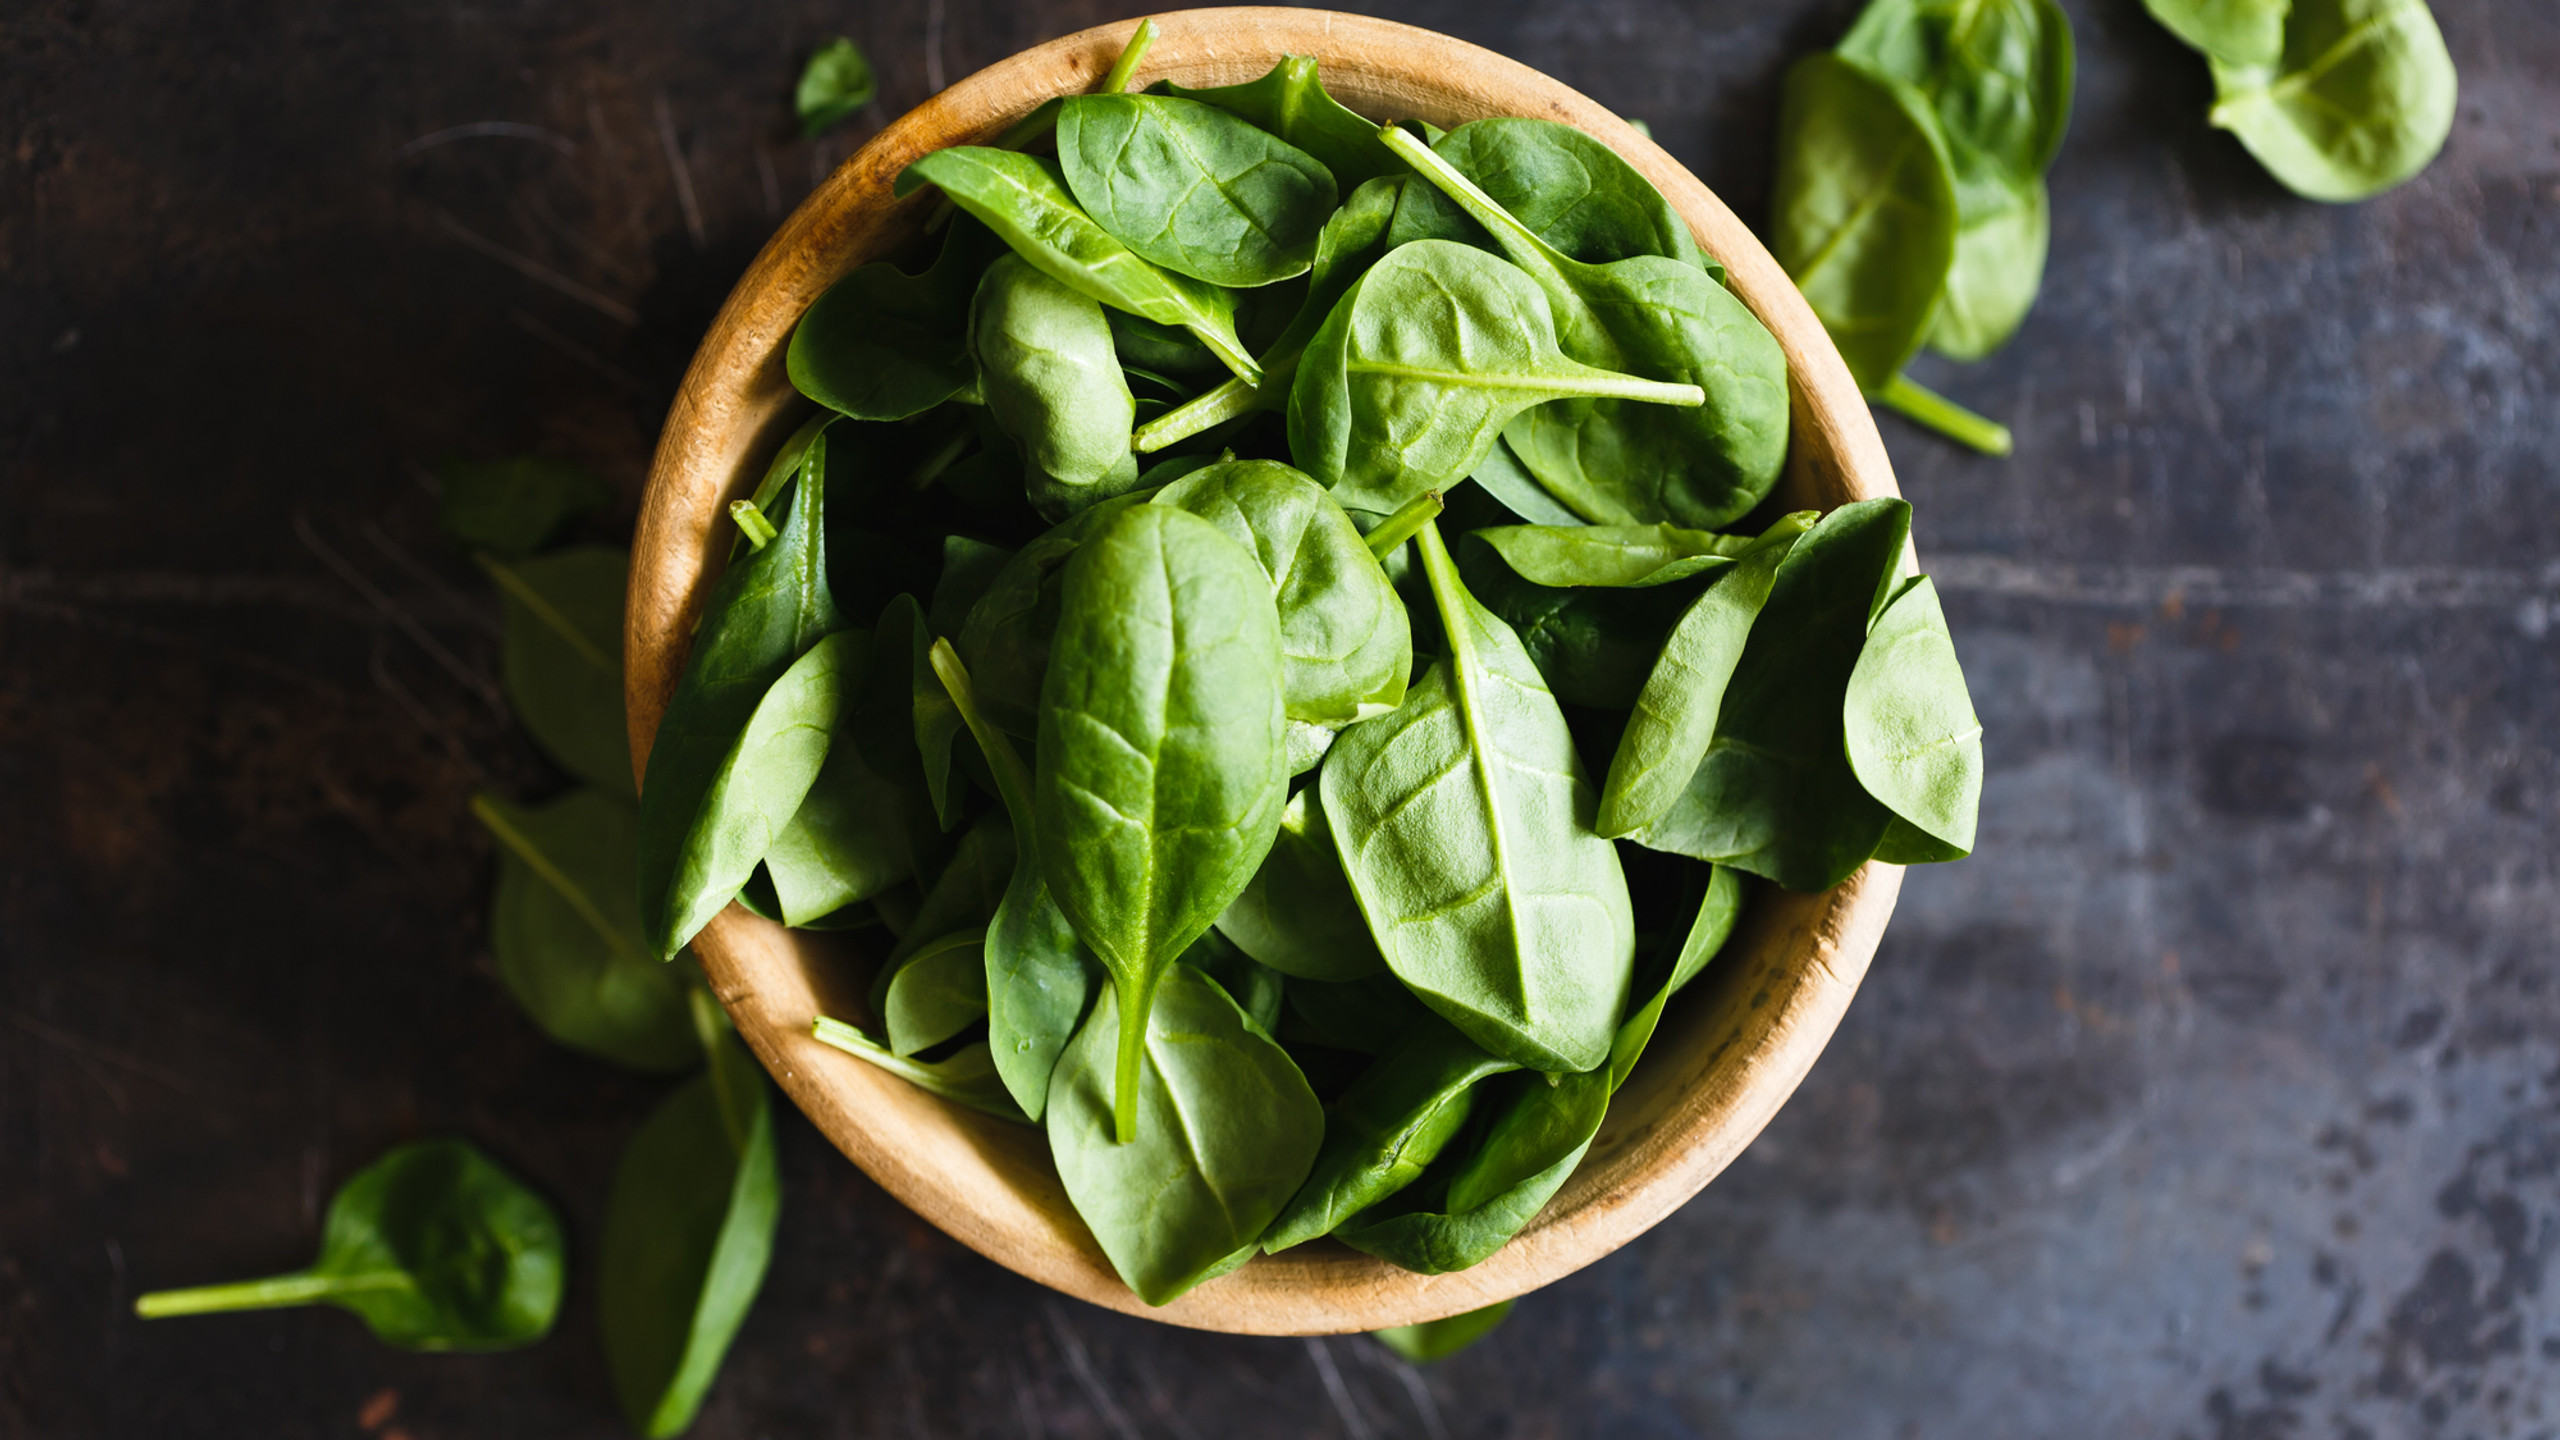 One cup of spinach has 5 grams of protein. Toss it into smoothies, eat it raw in salads or wilt it down into soups and sauces.